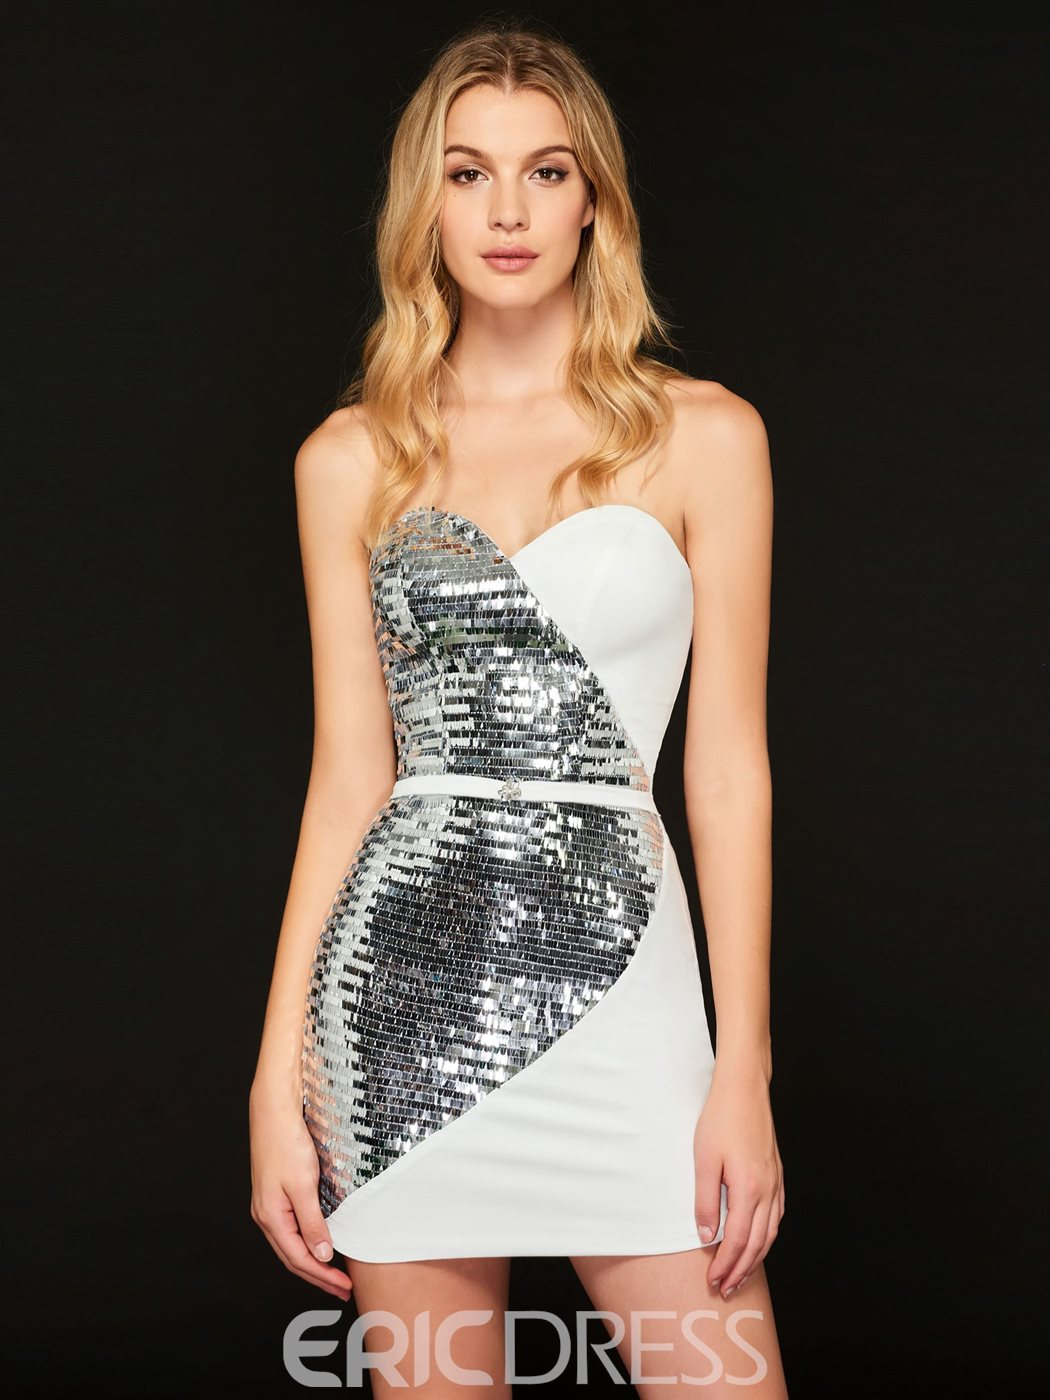 Ericdress Sweetheart Sheath Sequin Short Bodycon Homecoming Dress